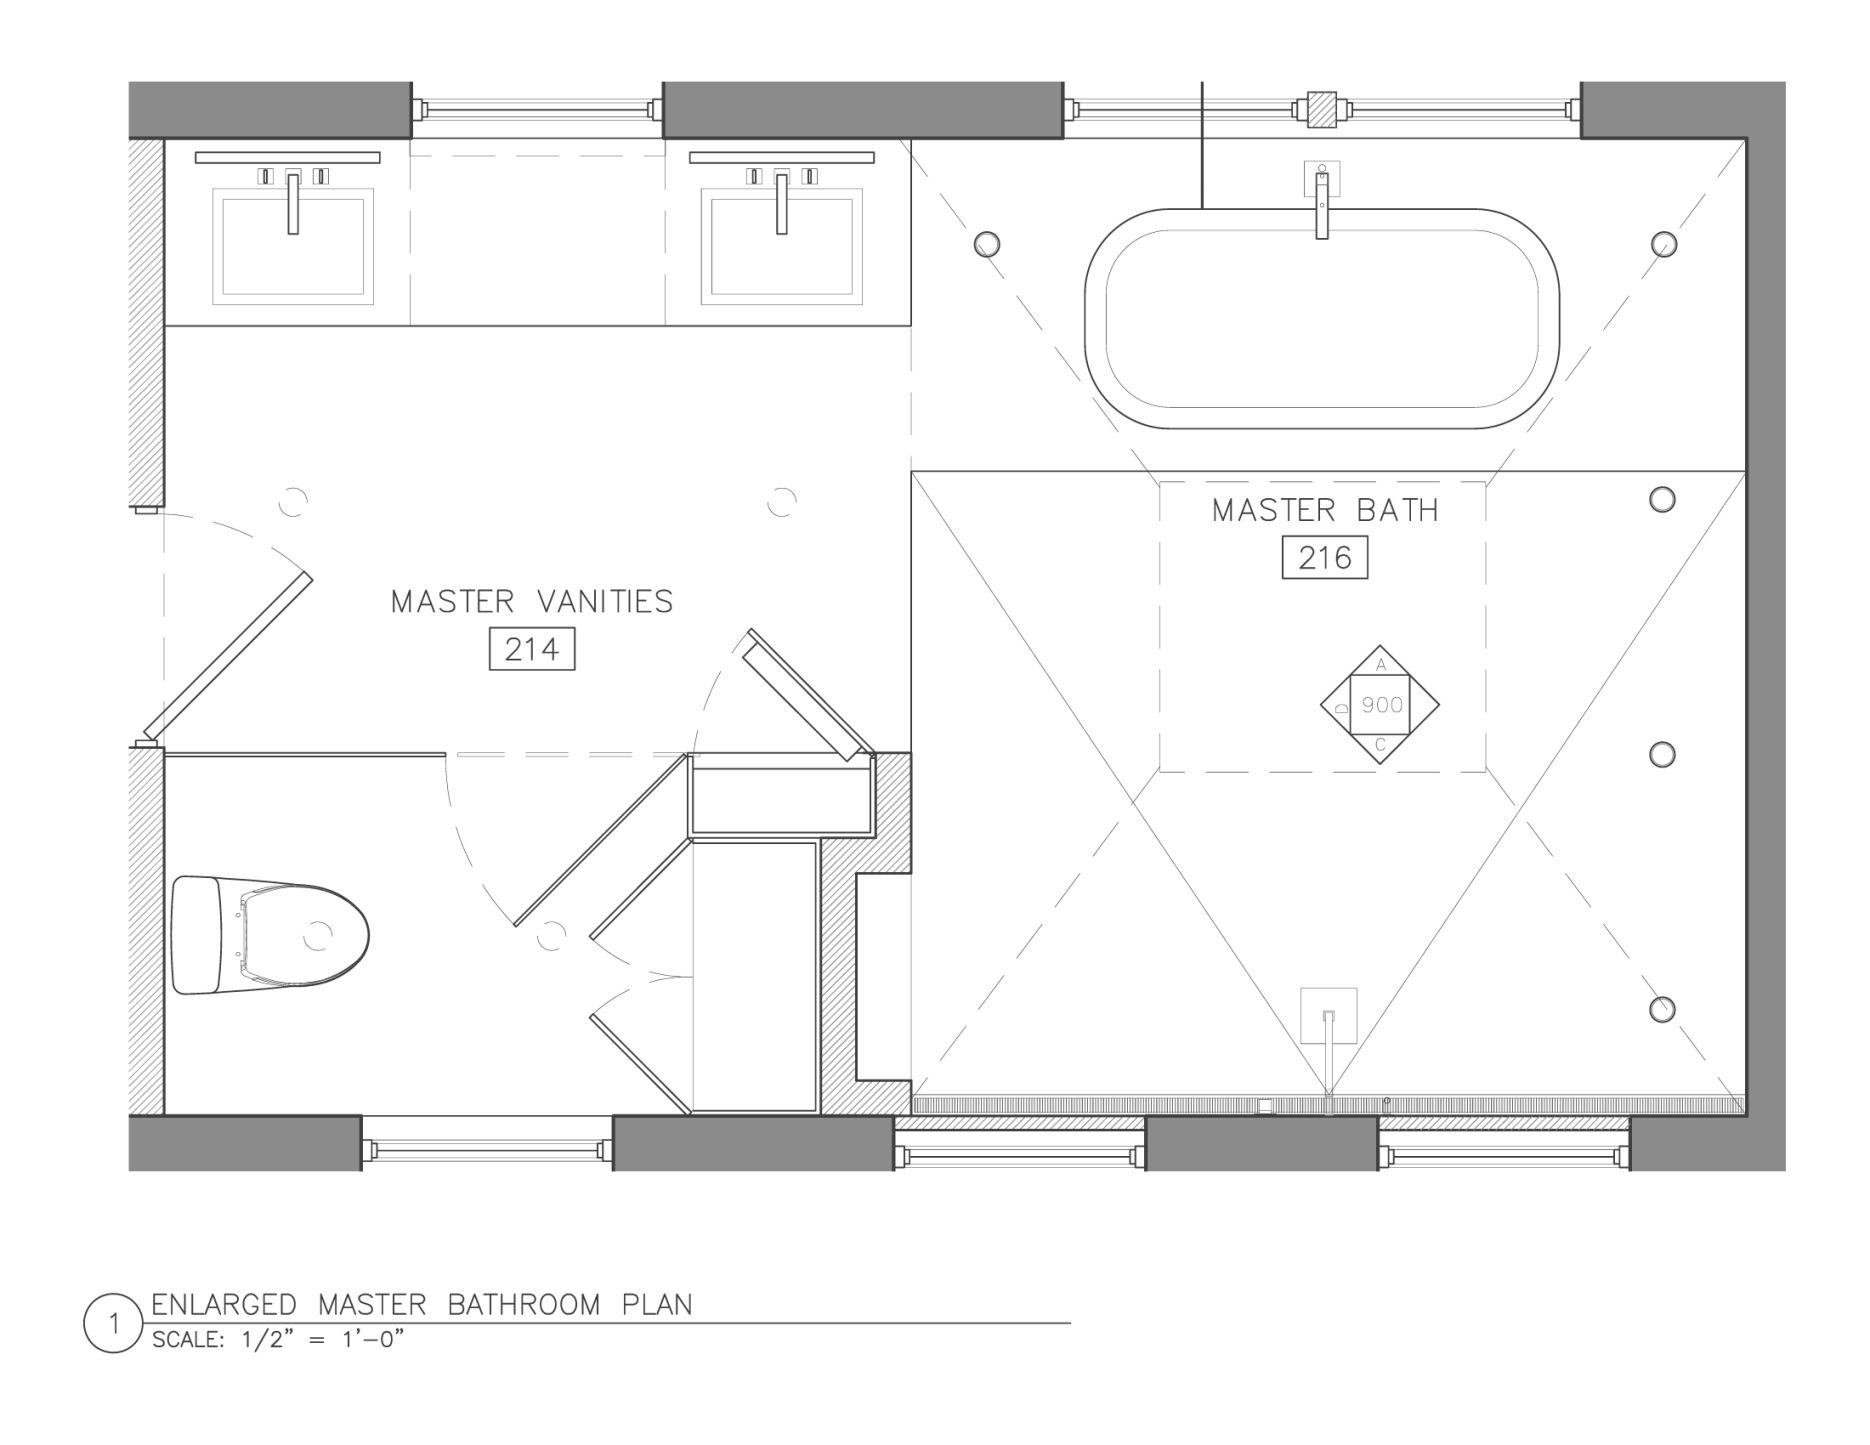 Awesome Ideas Bathroom Floor Plans 8 X 12 7 X Master Bath Layout For ...